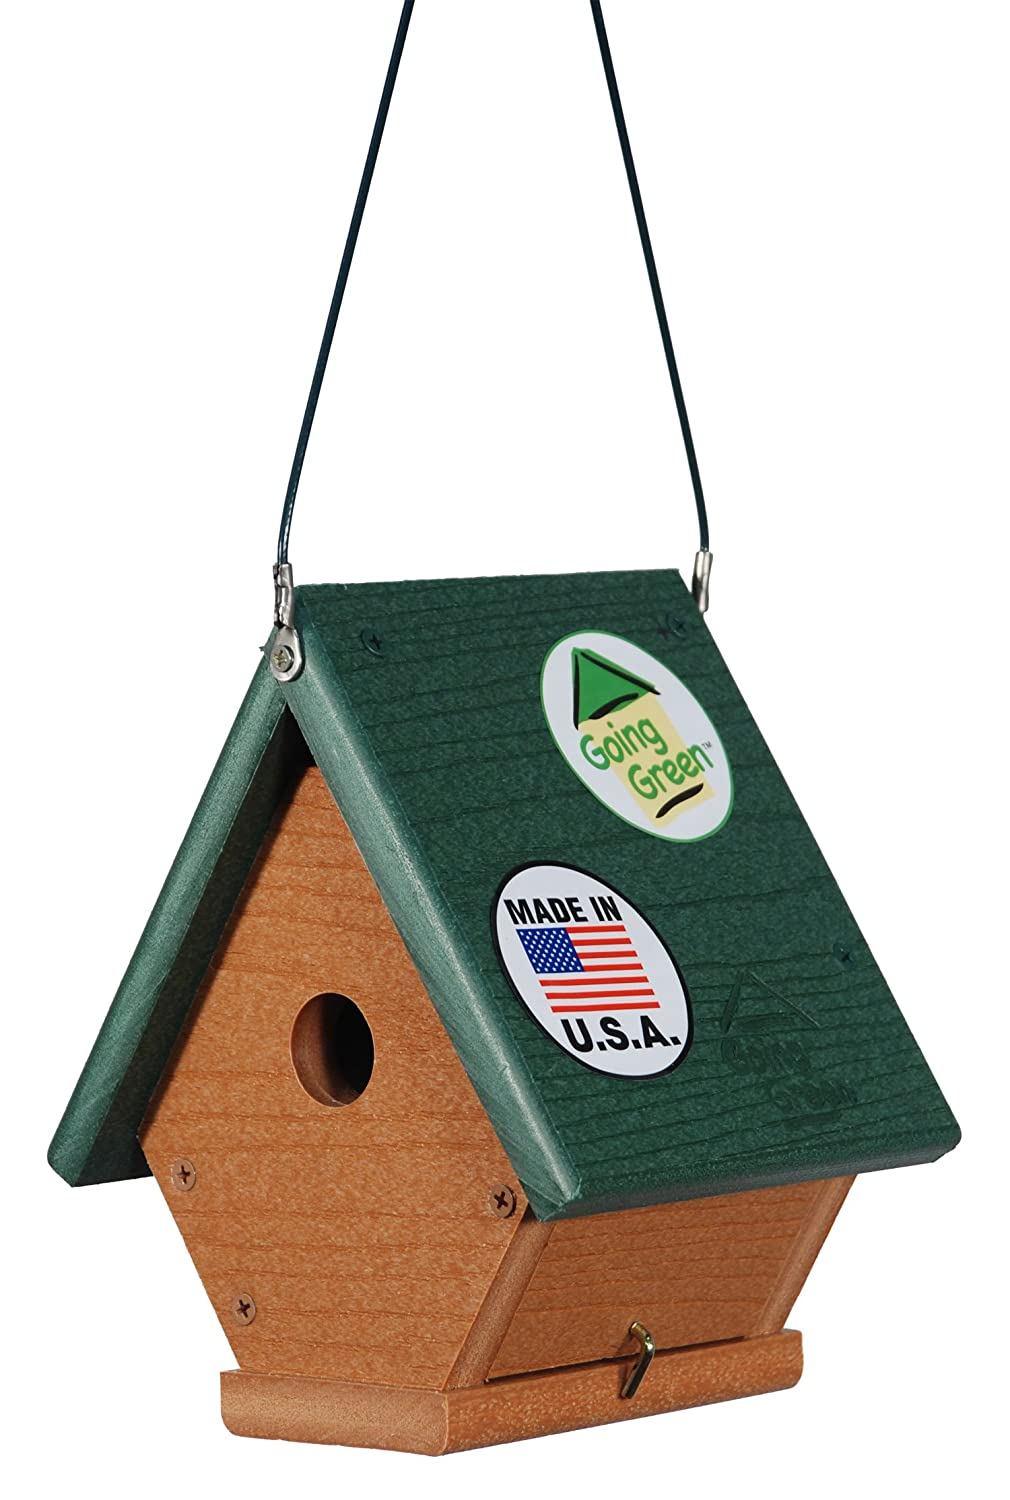 Woodlink Going Green Wren House Model GGWREN Kay Home Products